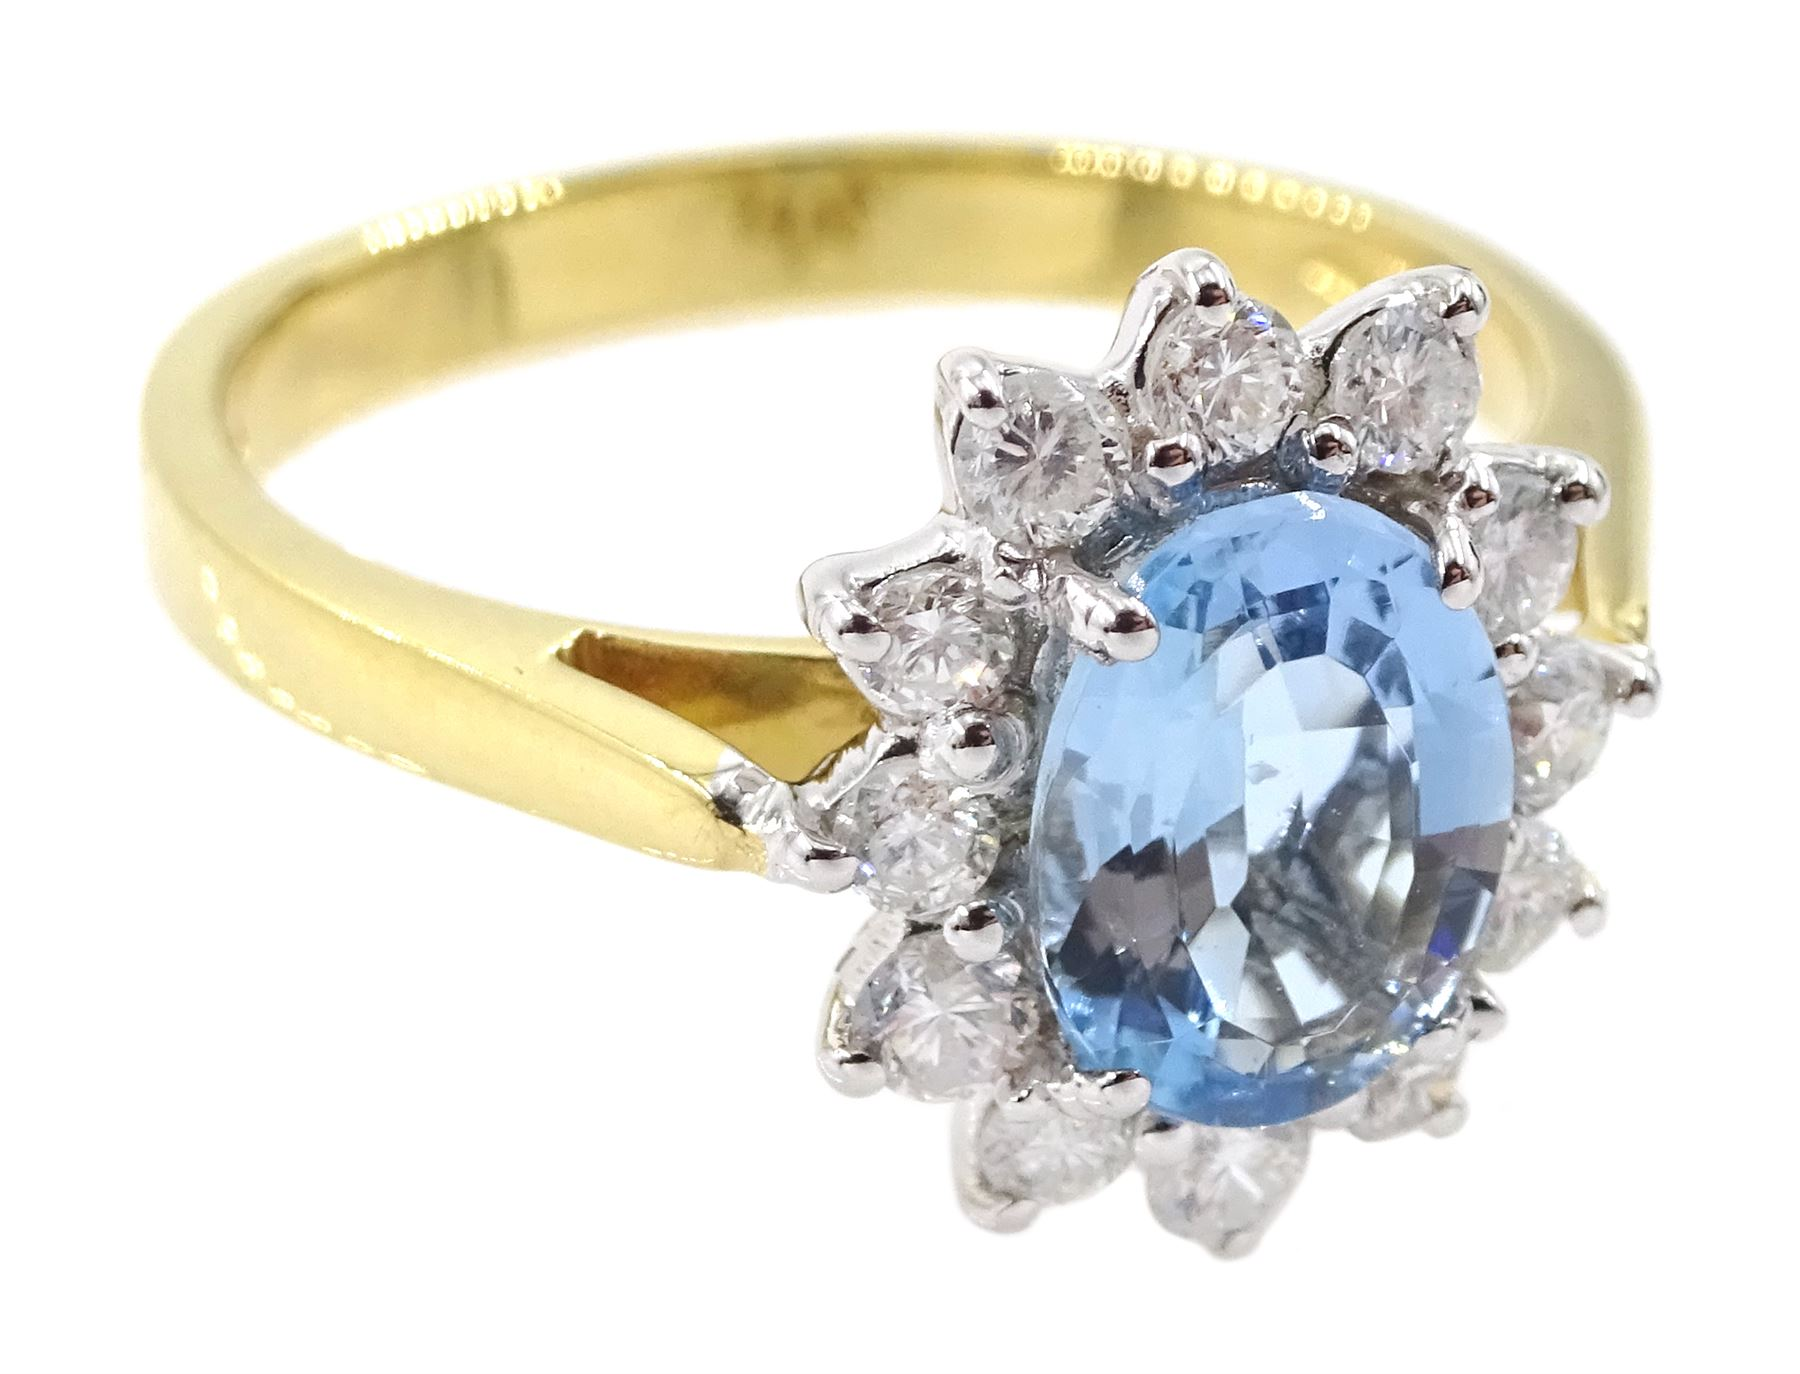 18ct gold oval aquamarine and round brilliant cut diamond cluster ring - Image 3 of 4